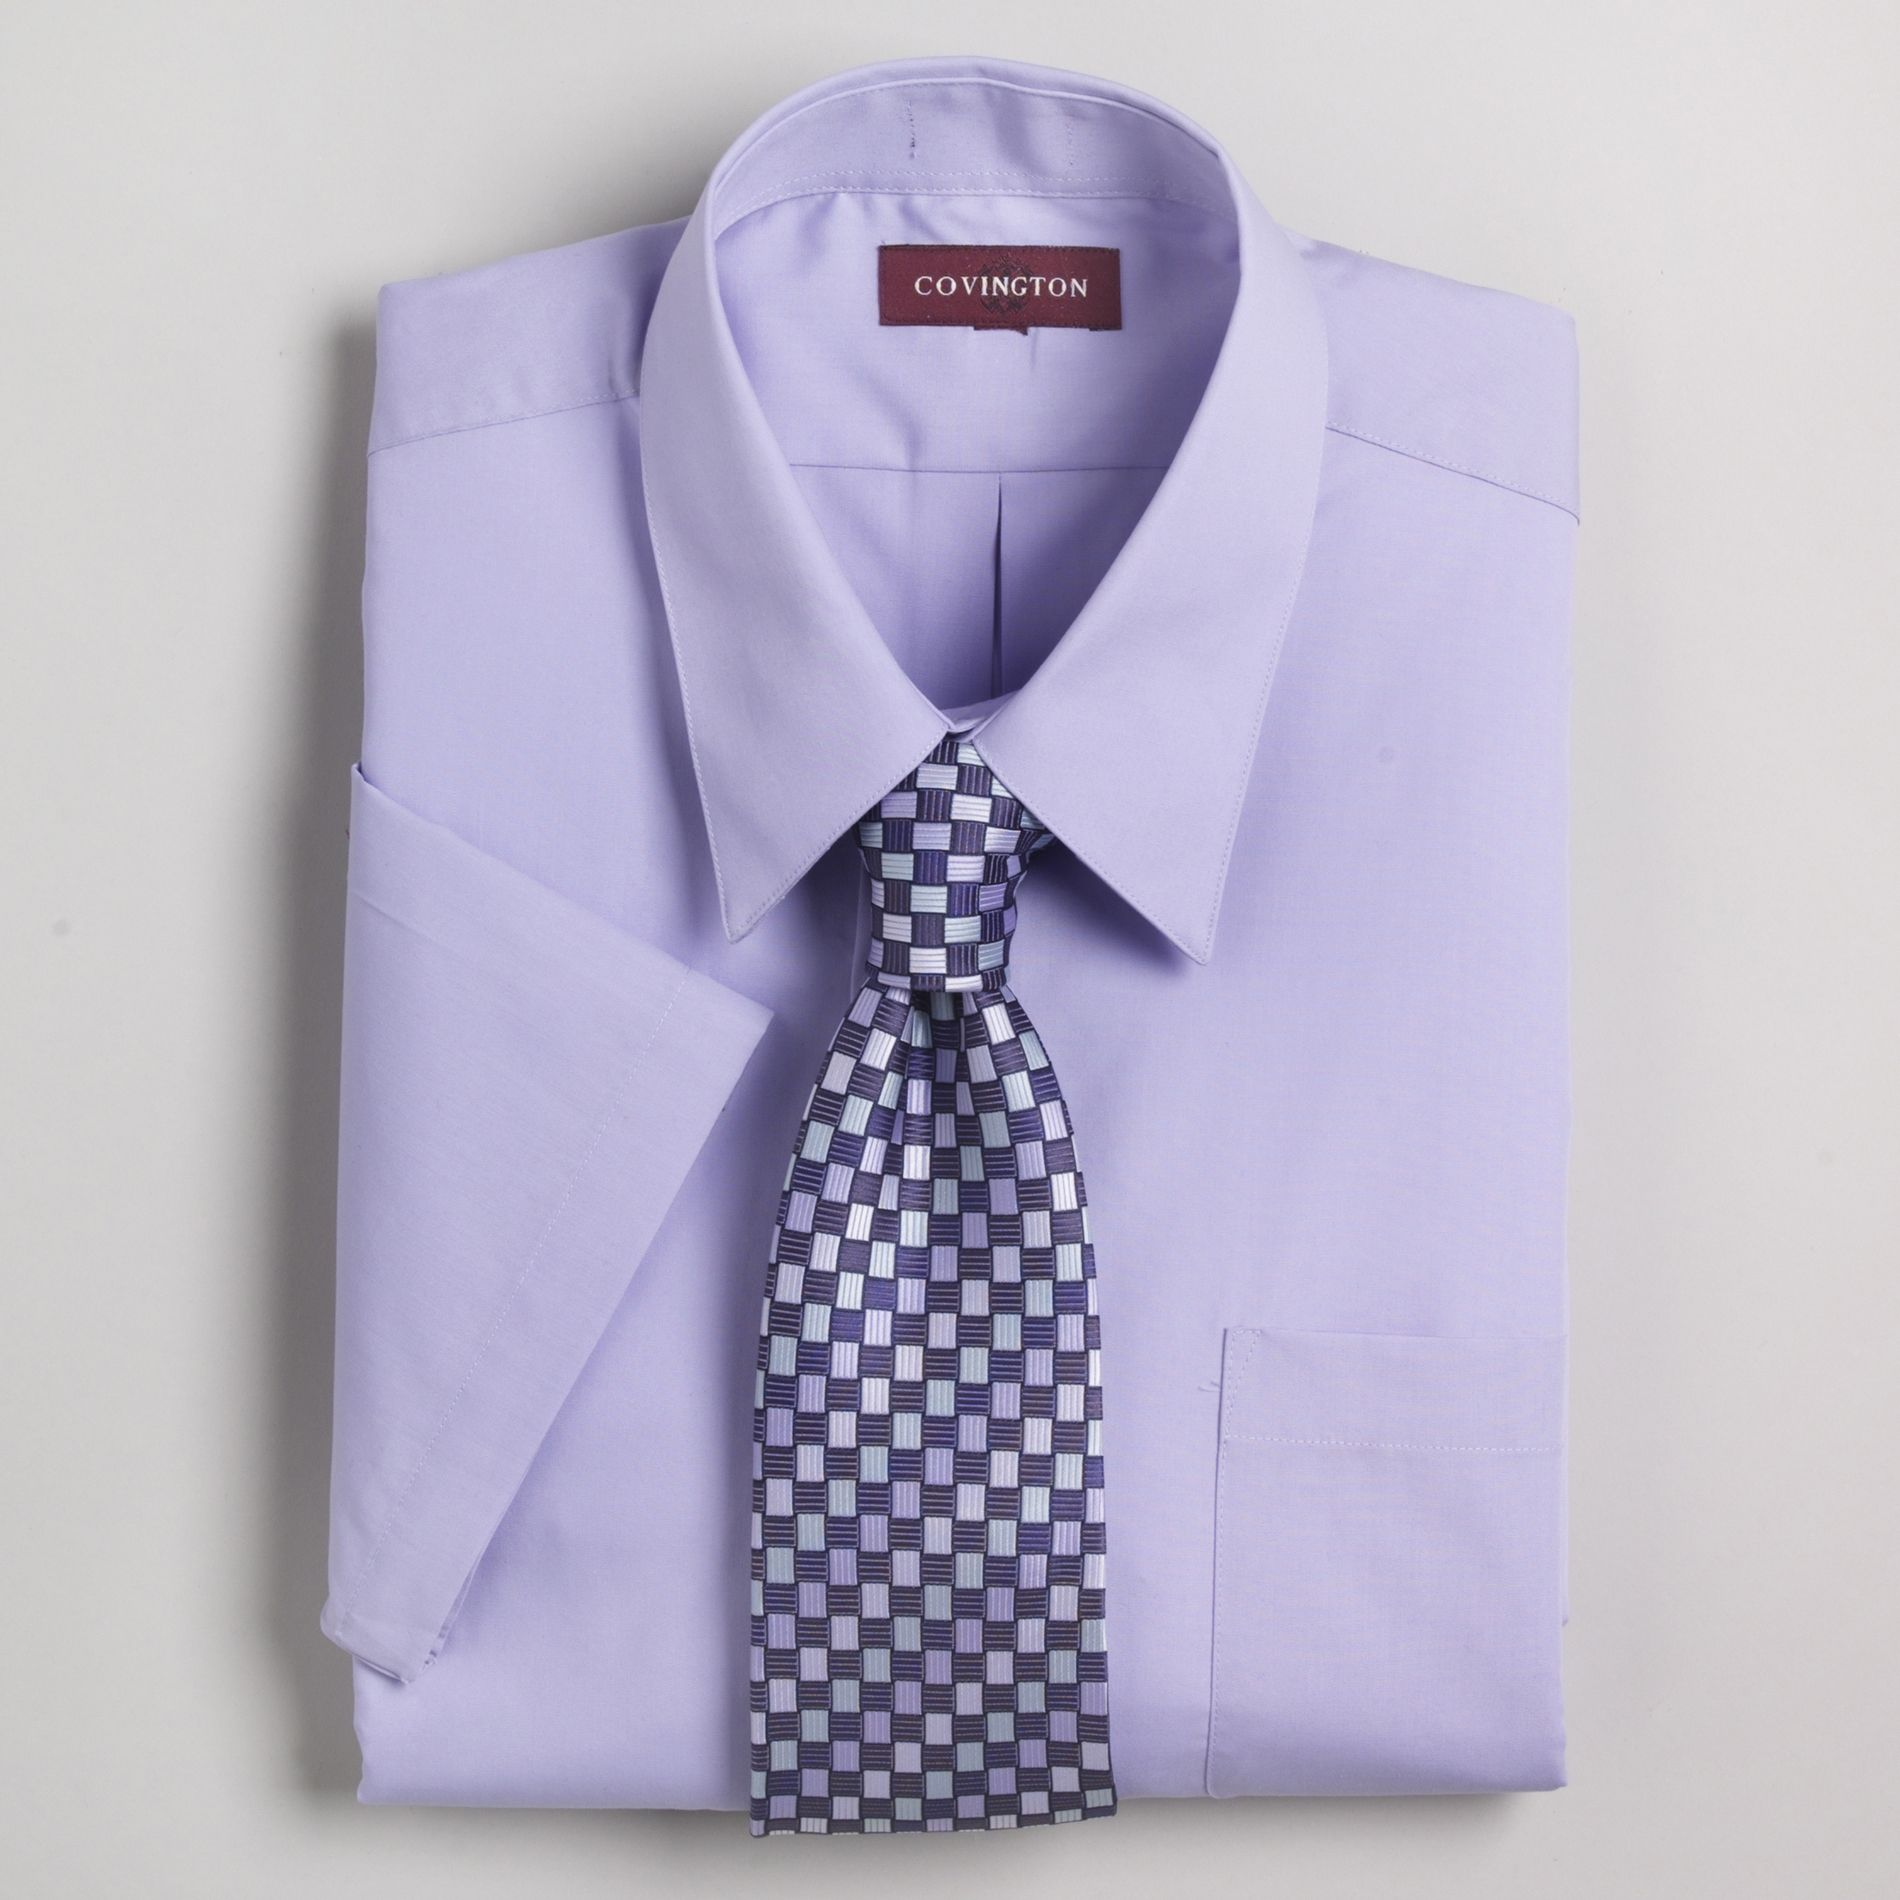 Covington Short Sleeve Dress Shirt and Silk